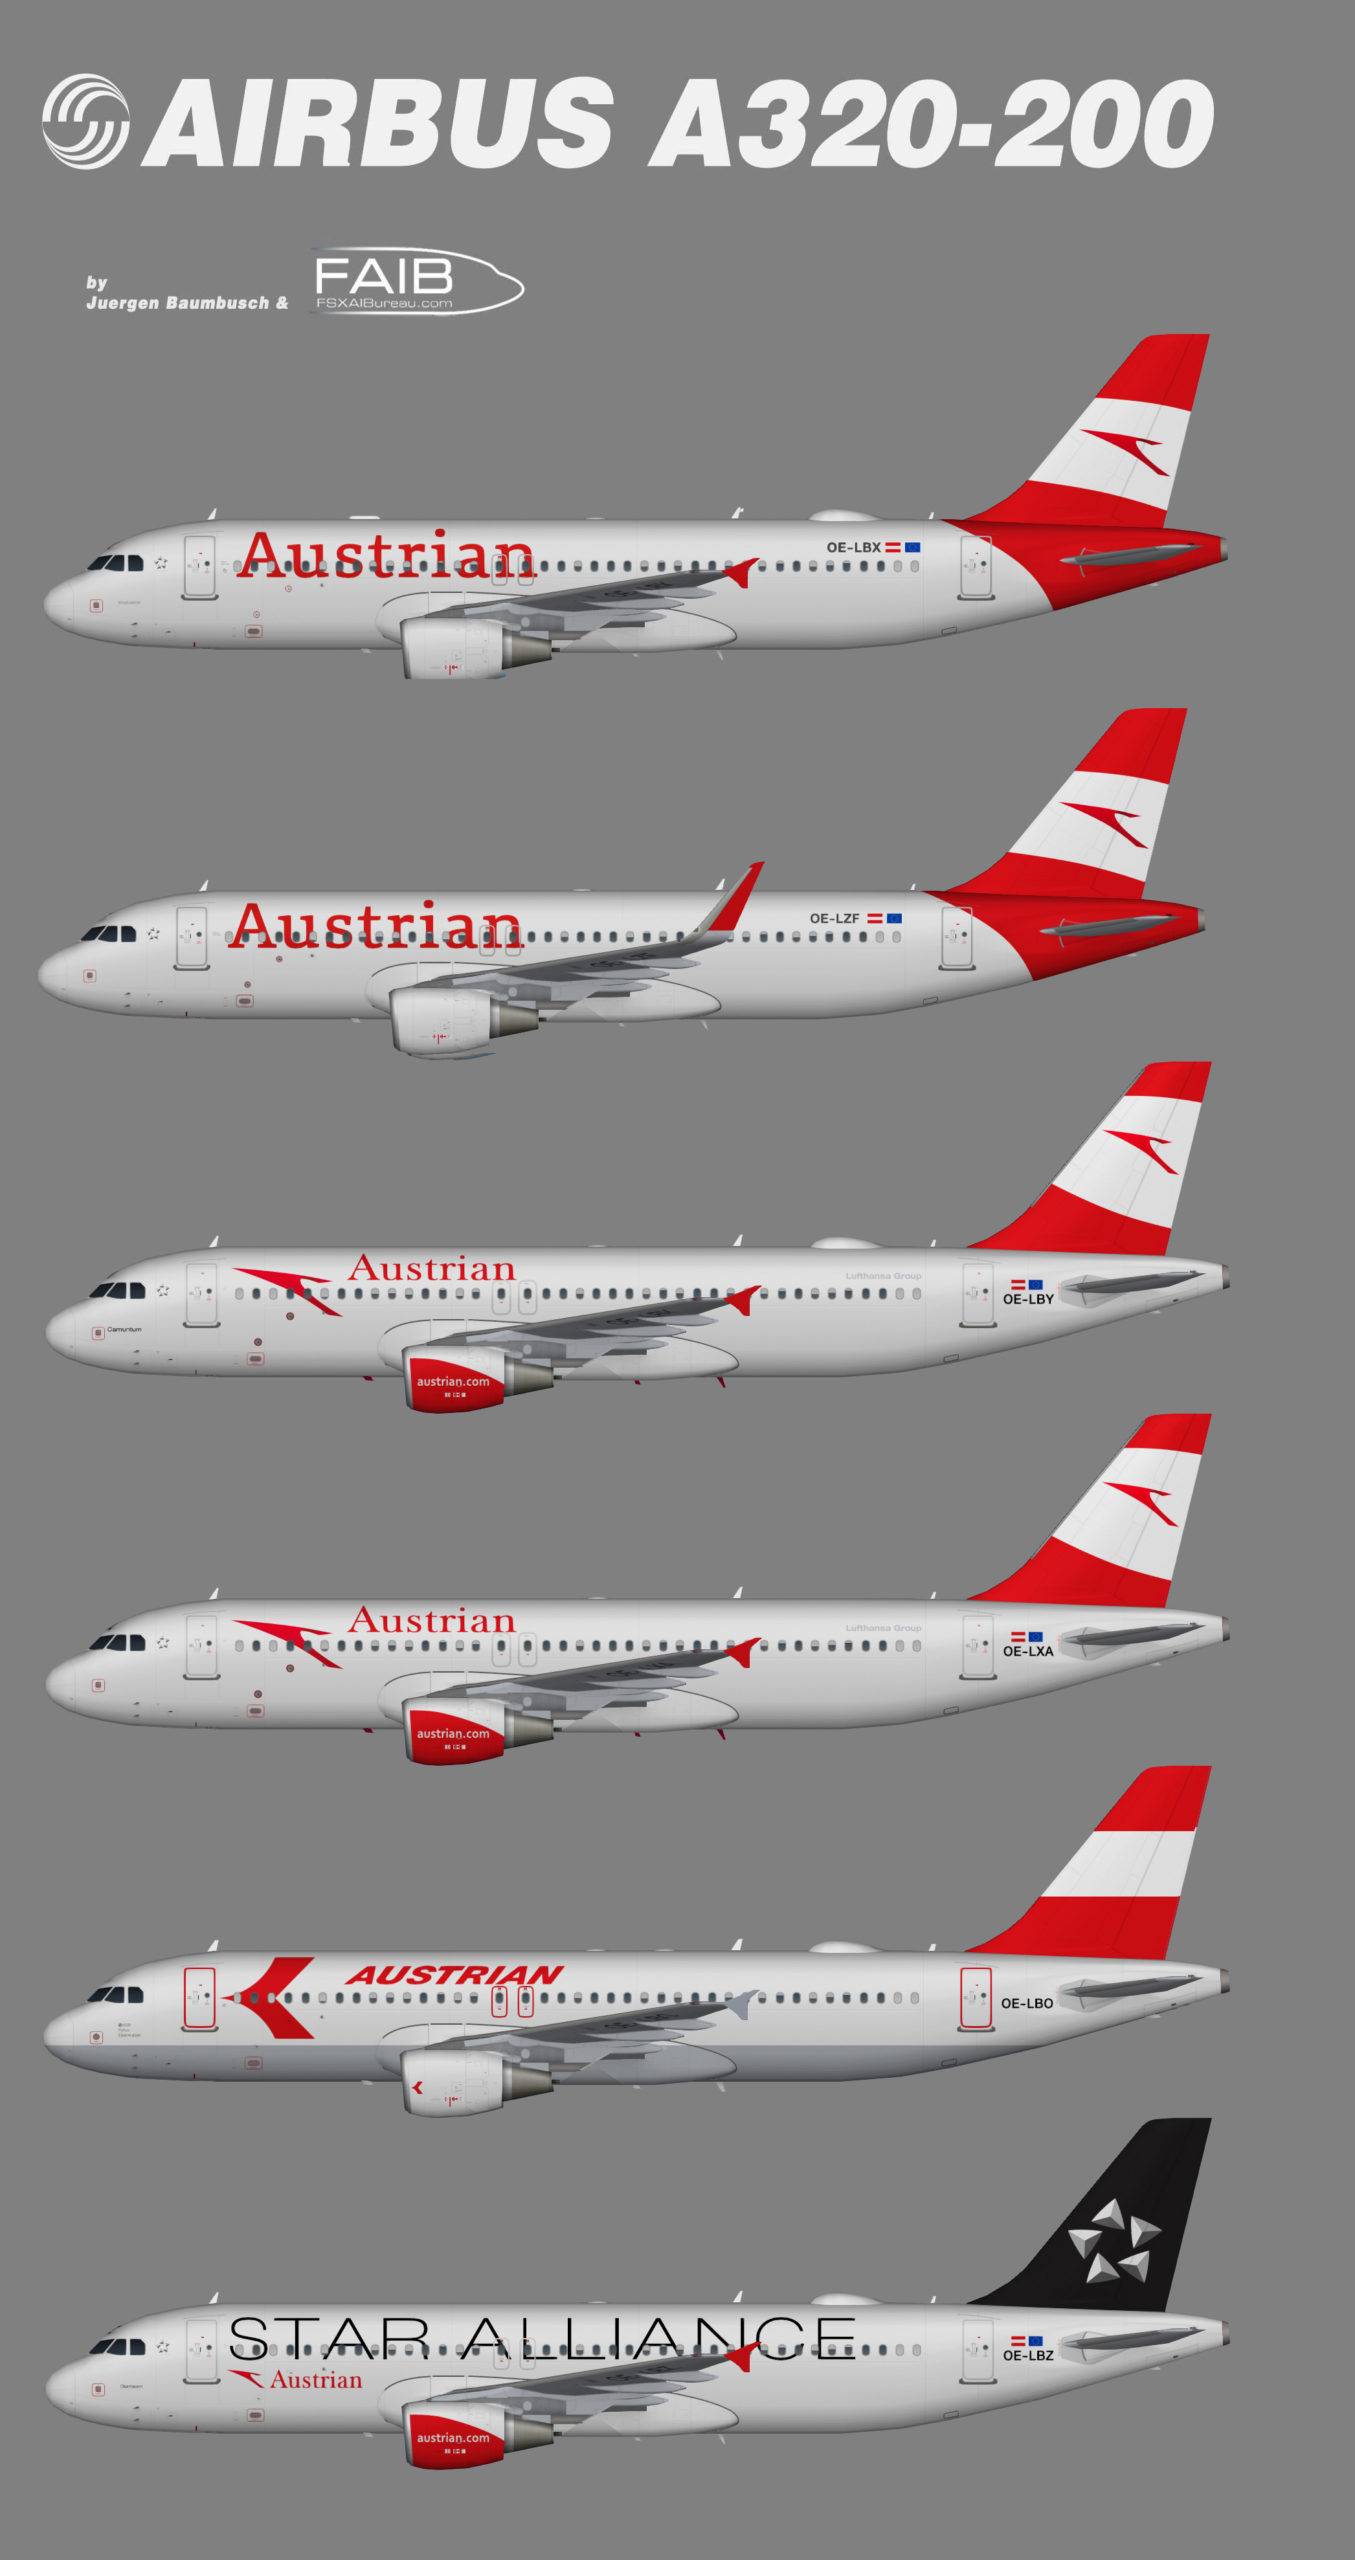 Austrian Airlines Airbus A320-200